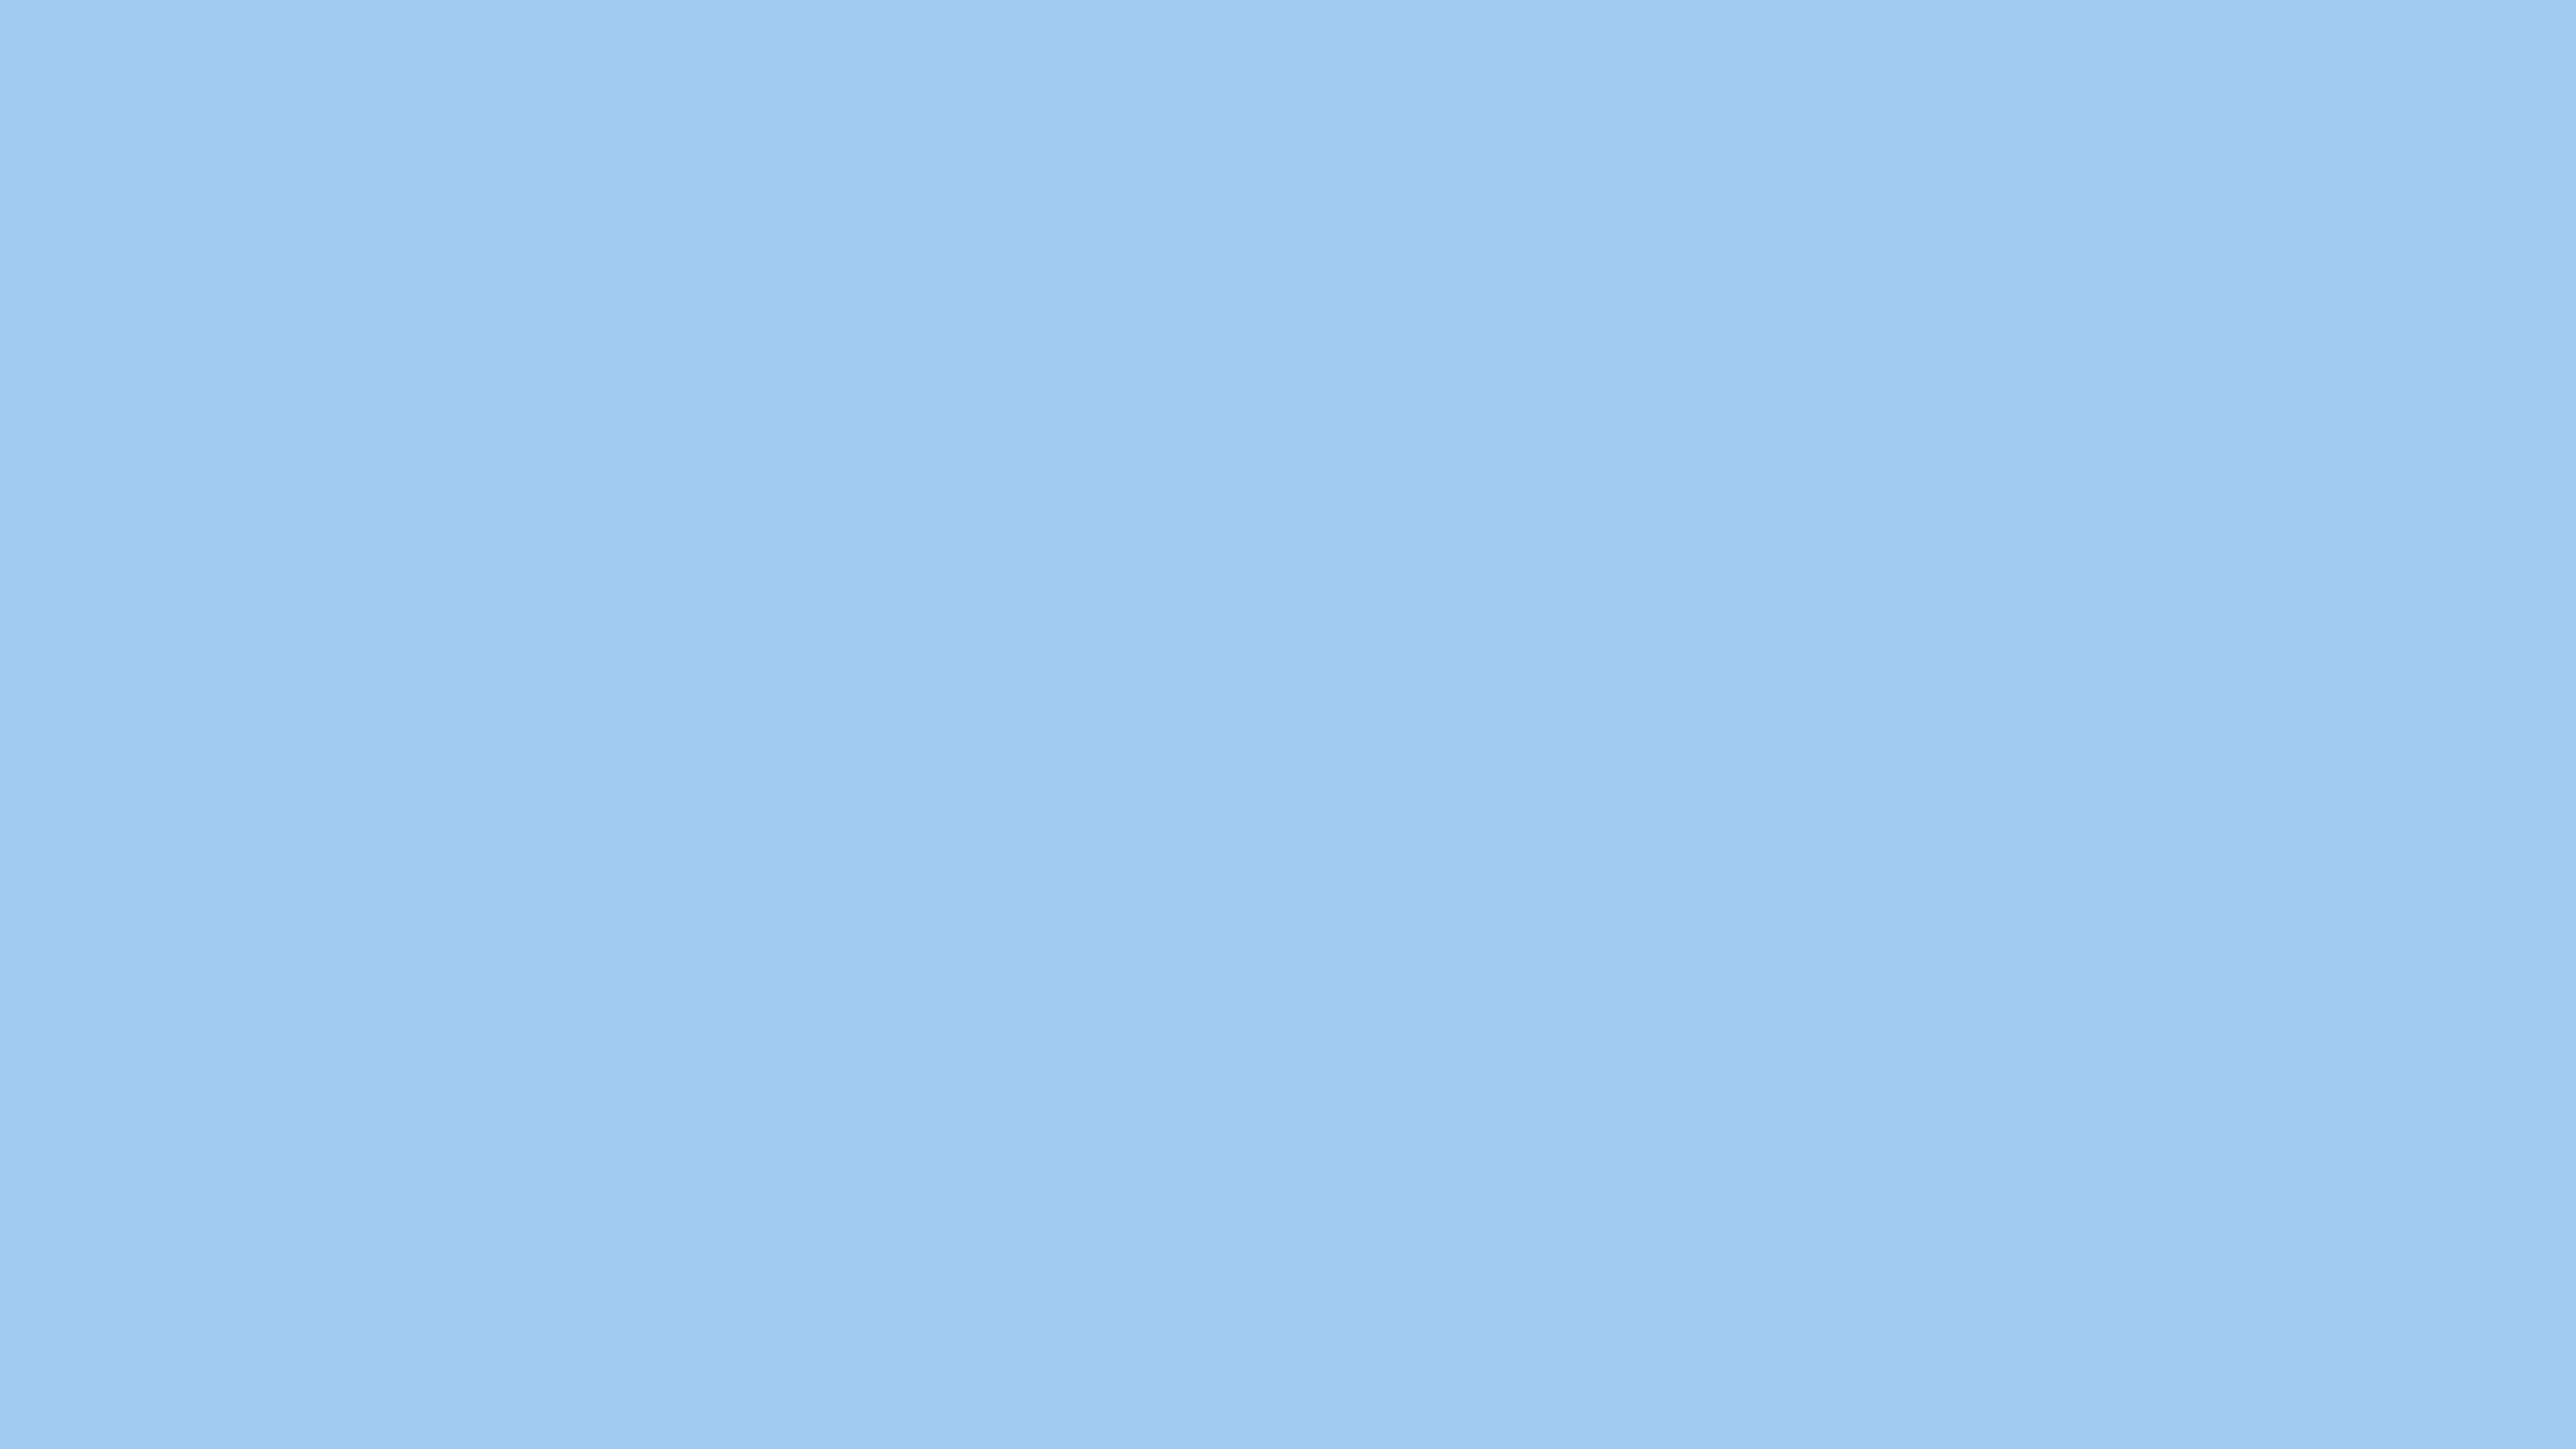 5120x2880 Baby Blue Eyes Solid Color Background